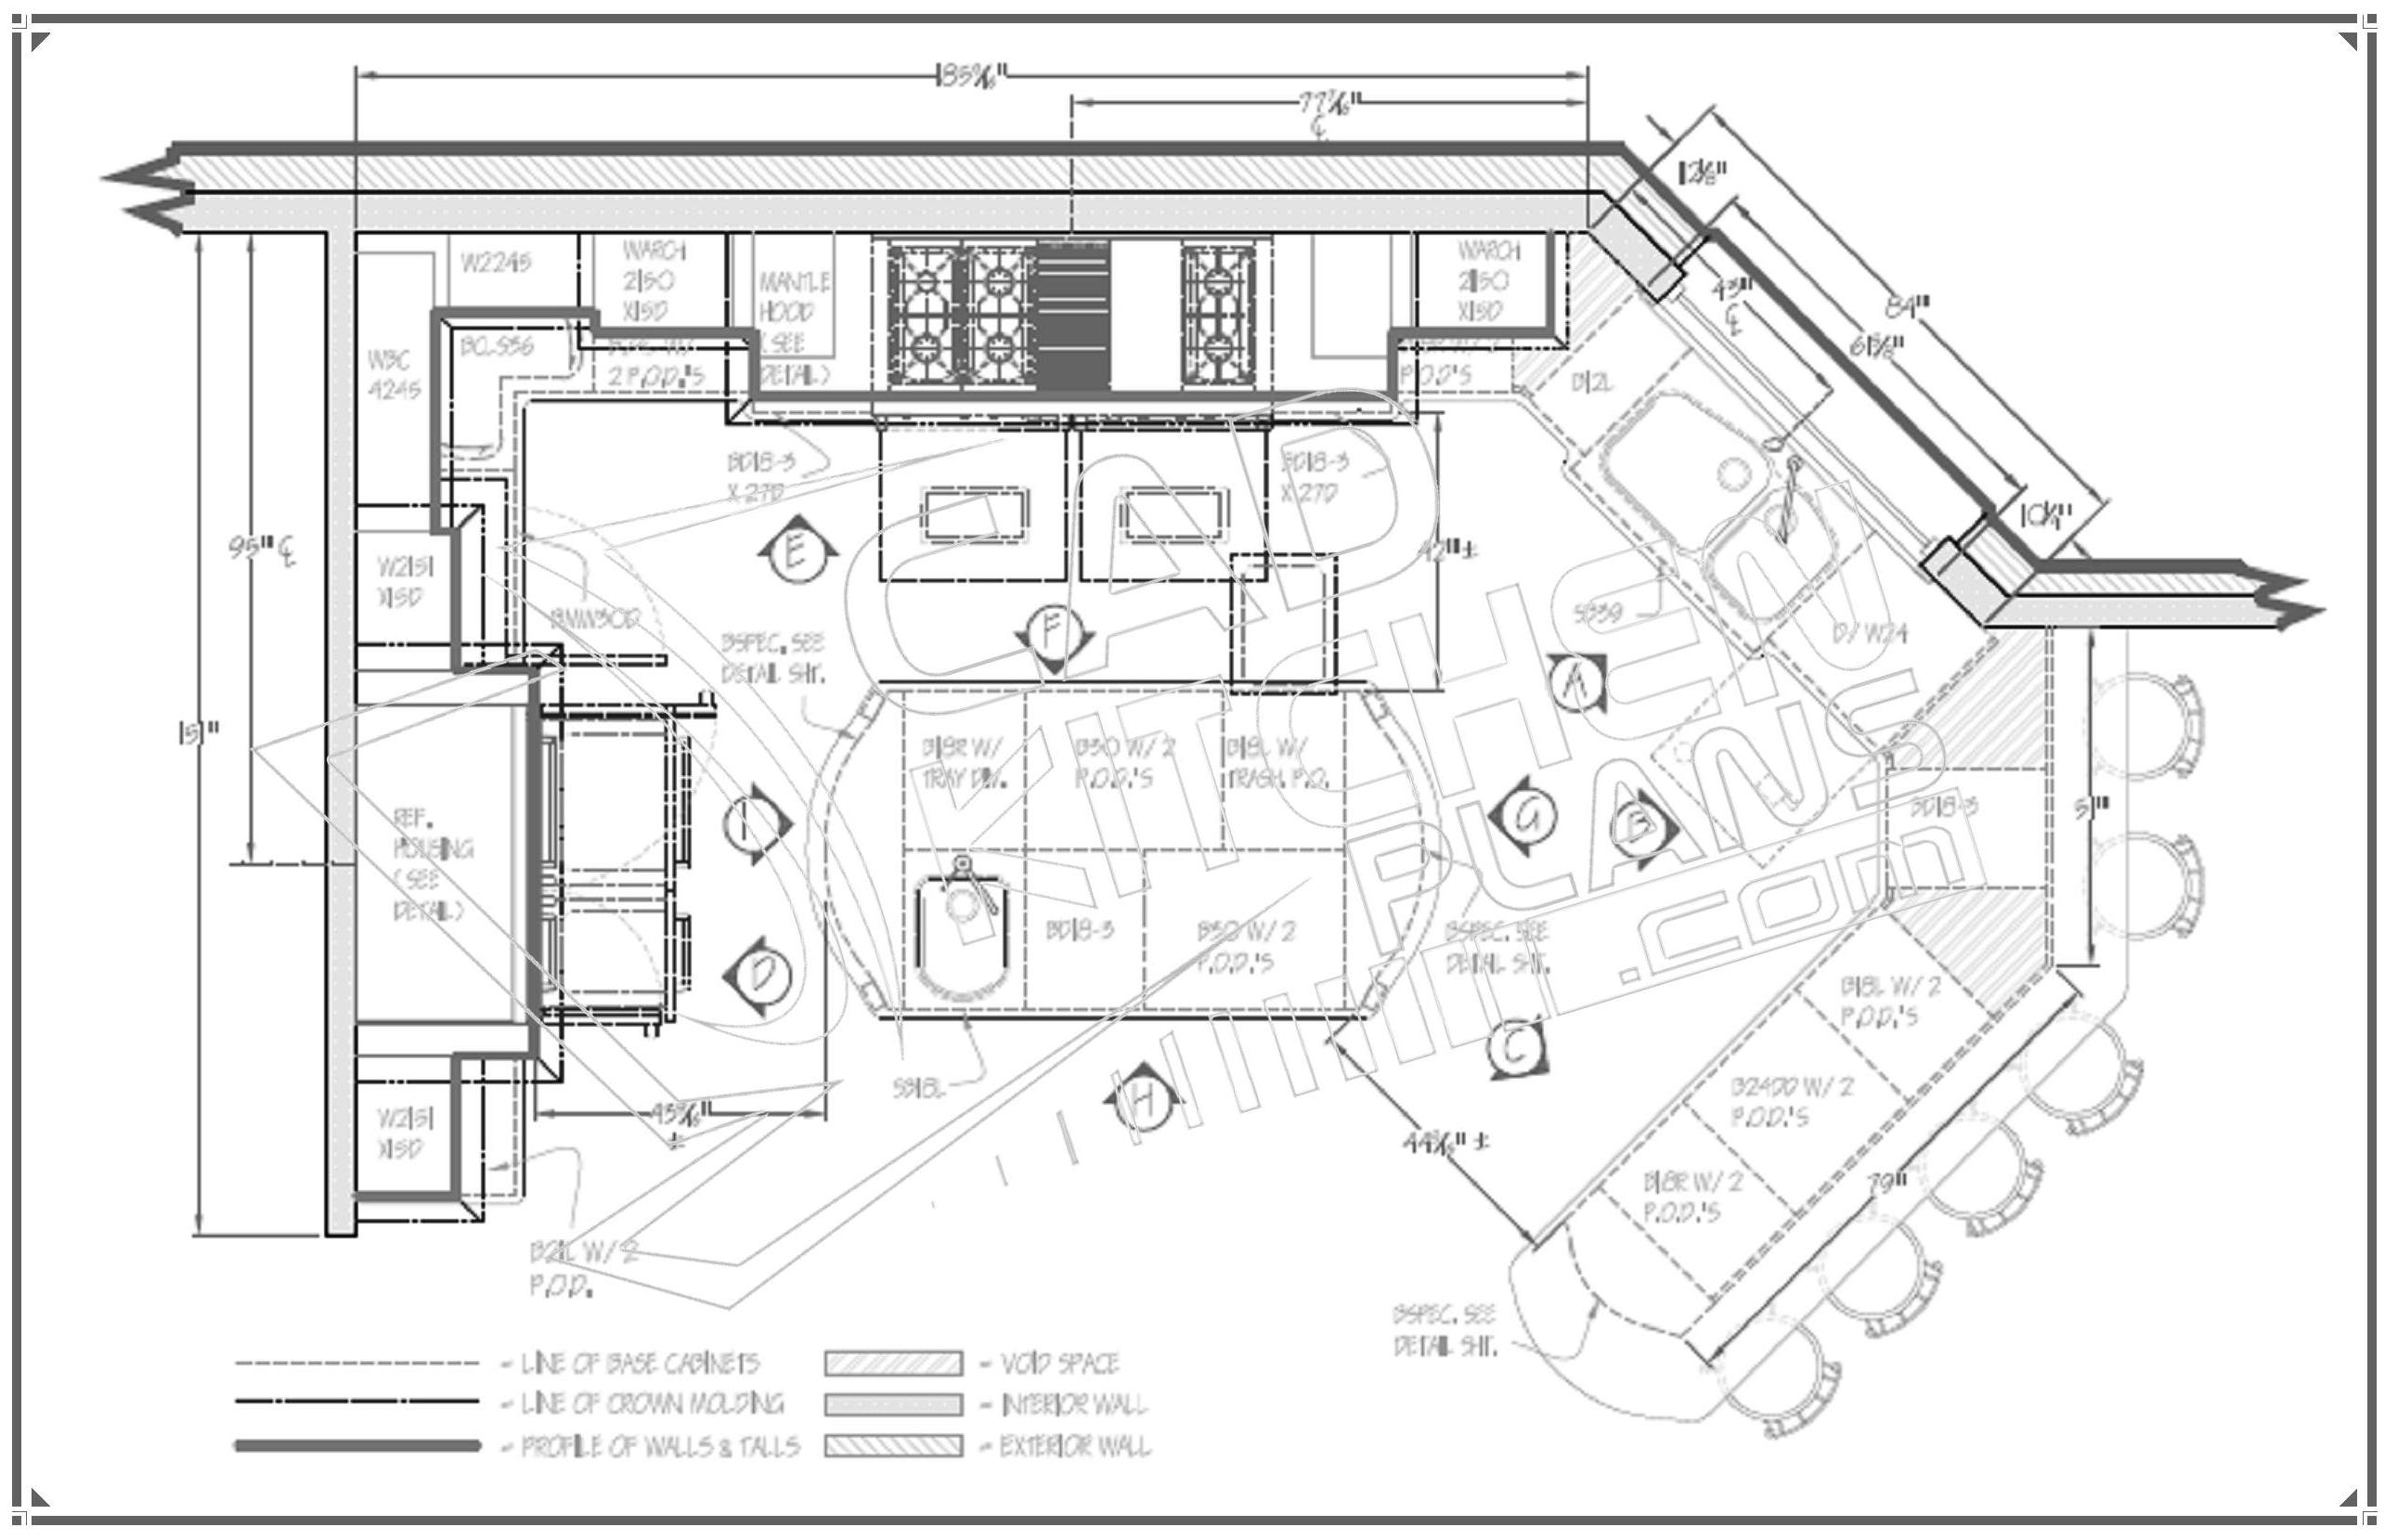 House Plans With Courtyards In Front in addition Small Church Floor Plan Designs additionally Red And White Graphic Designs also Earth Sheltered Home Plans With Basement as well 309622543105954626. on cool modern house plans